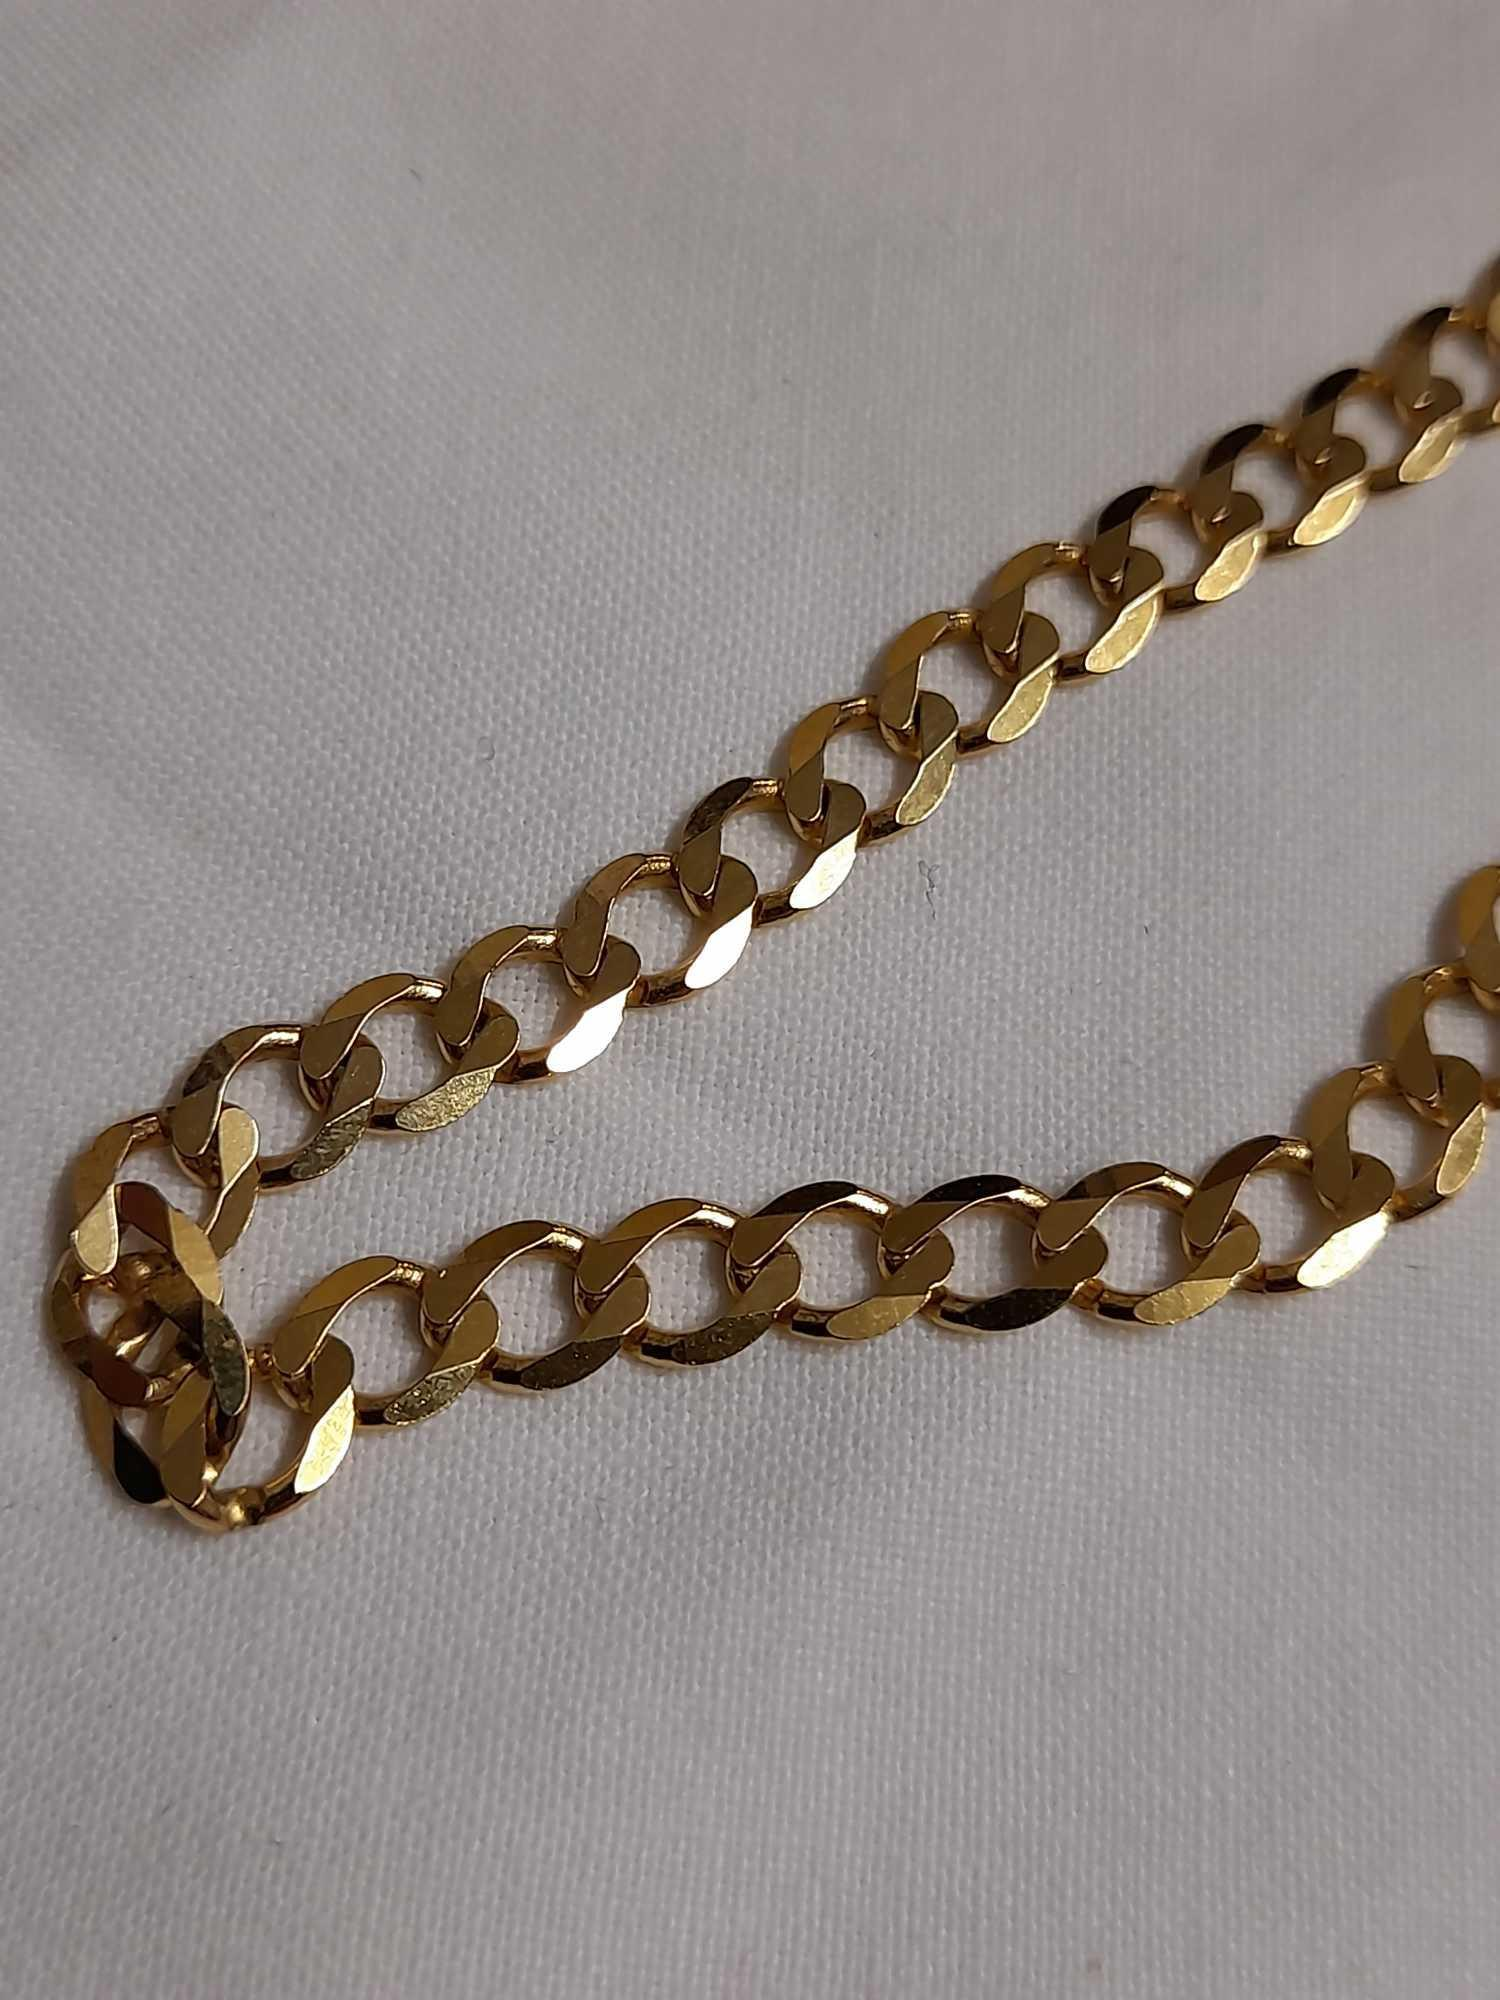 GOLD CHAIN 9 G - Image 2 of 3